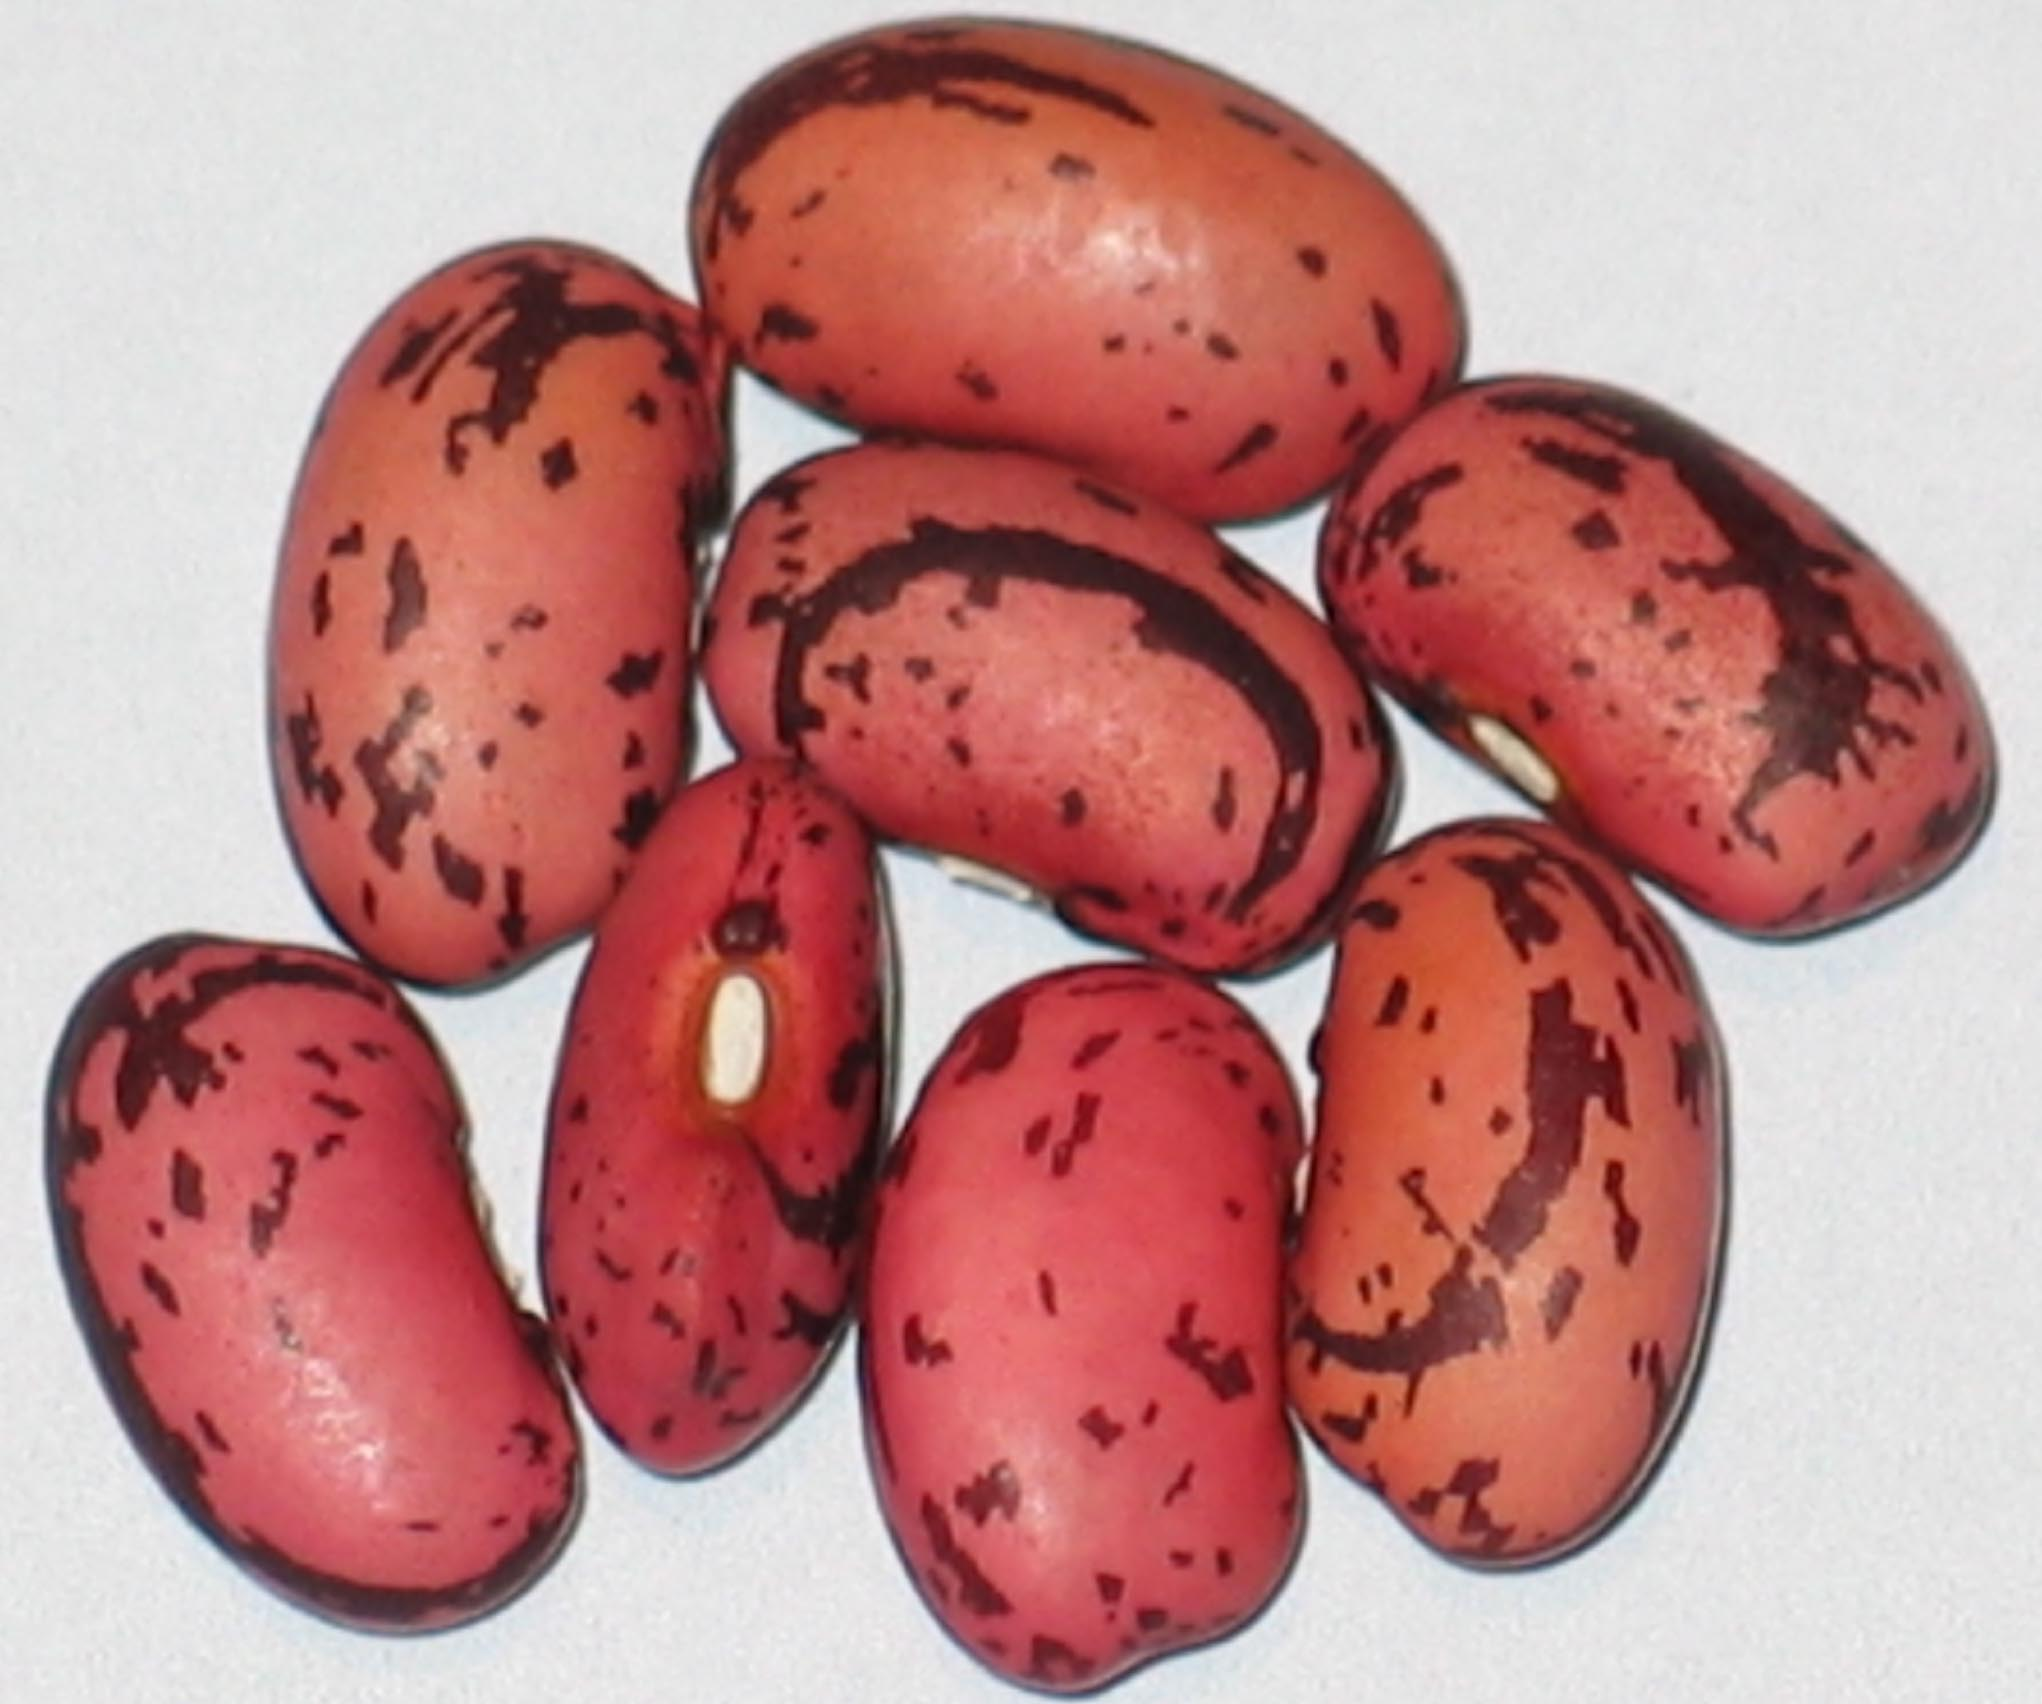 image of African Premier beans